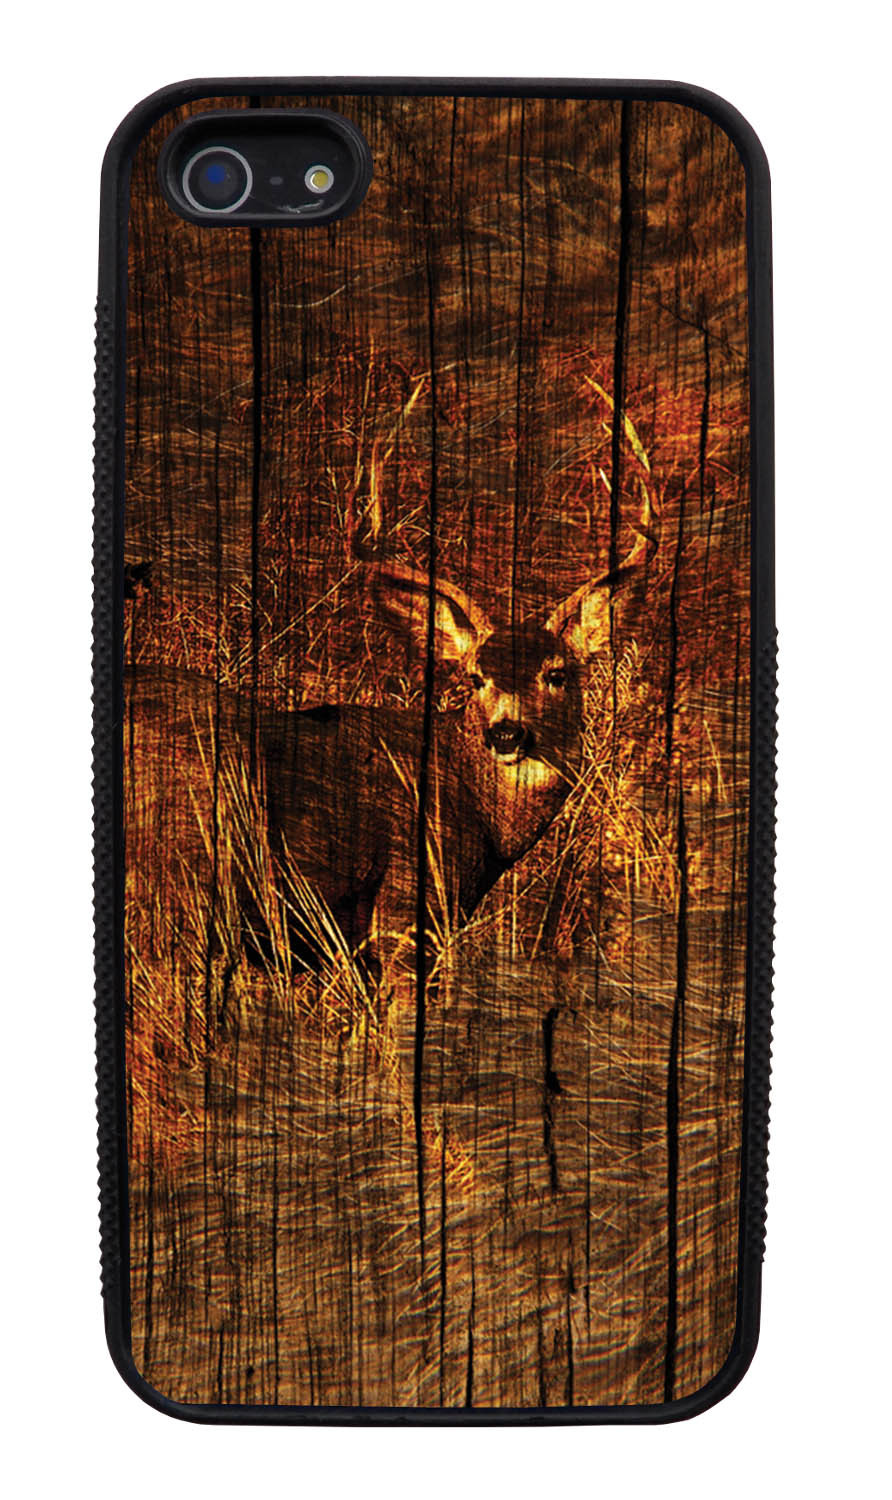 Apple iPhone 5 / 5S Deer Case - Deer Photo with Wood Overlay - Picture - Black Slim Rubber Case